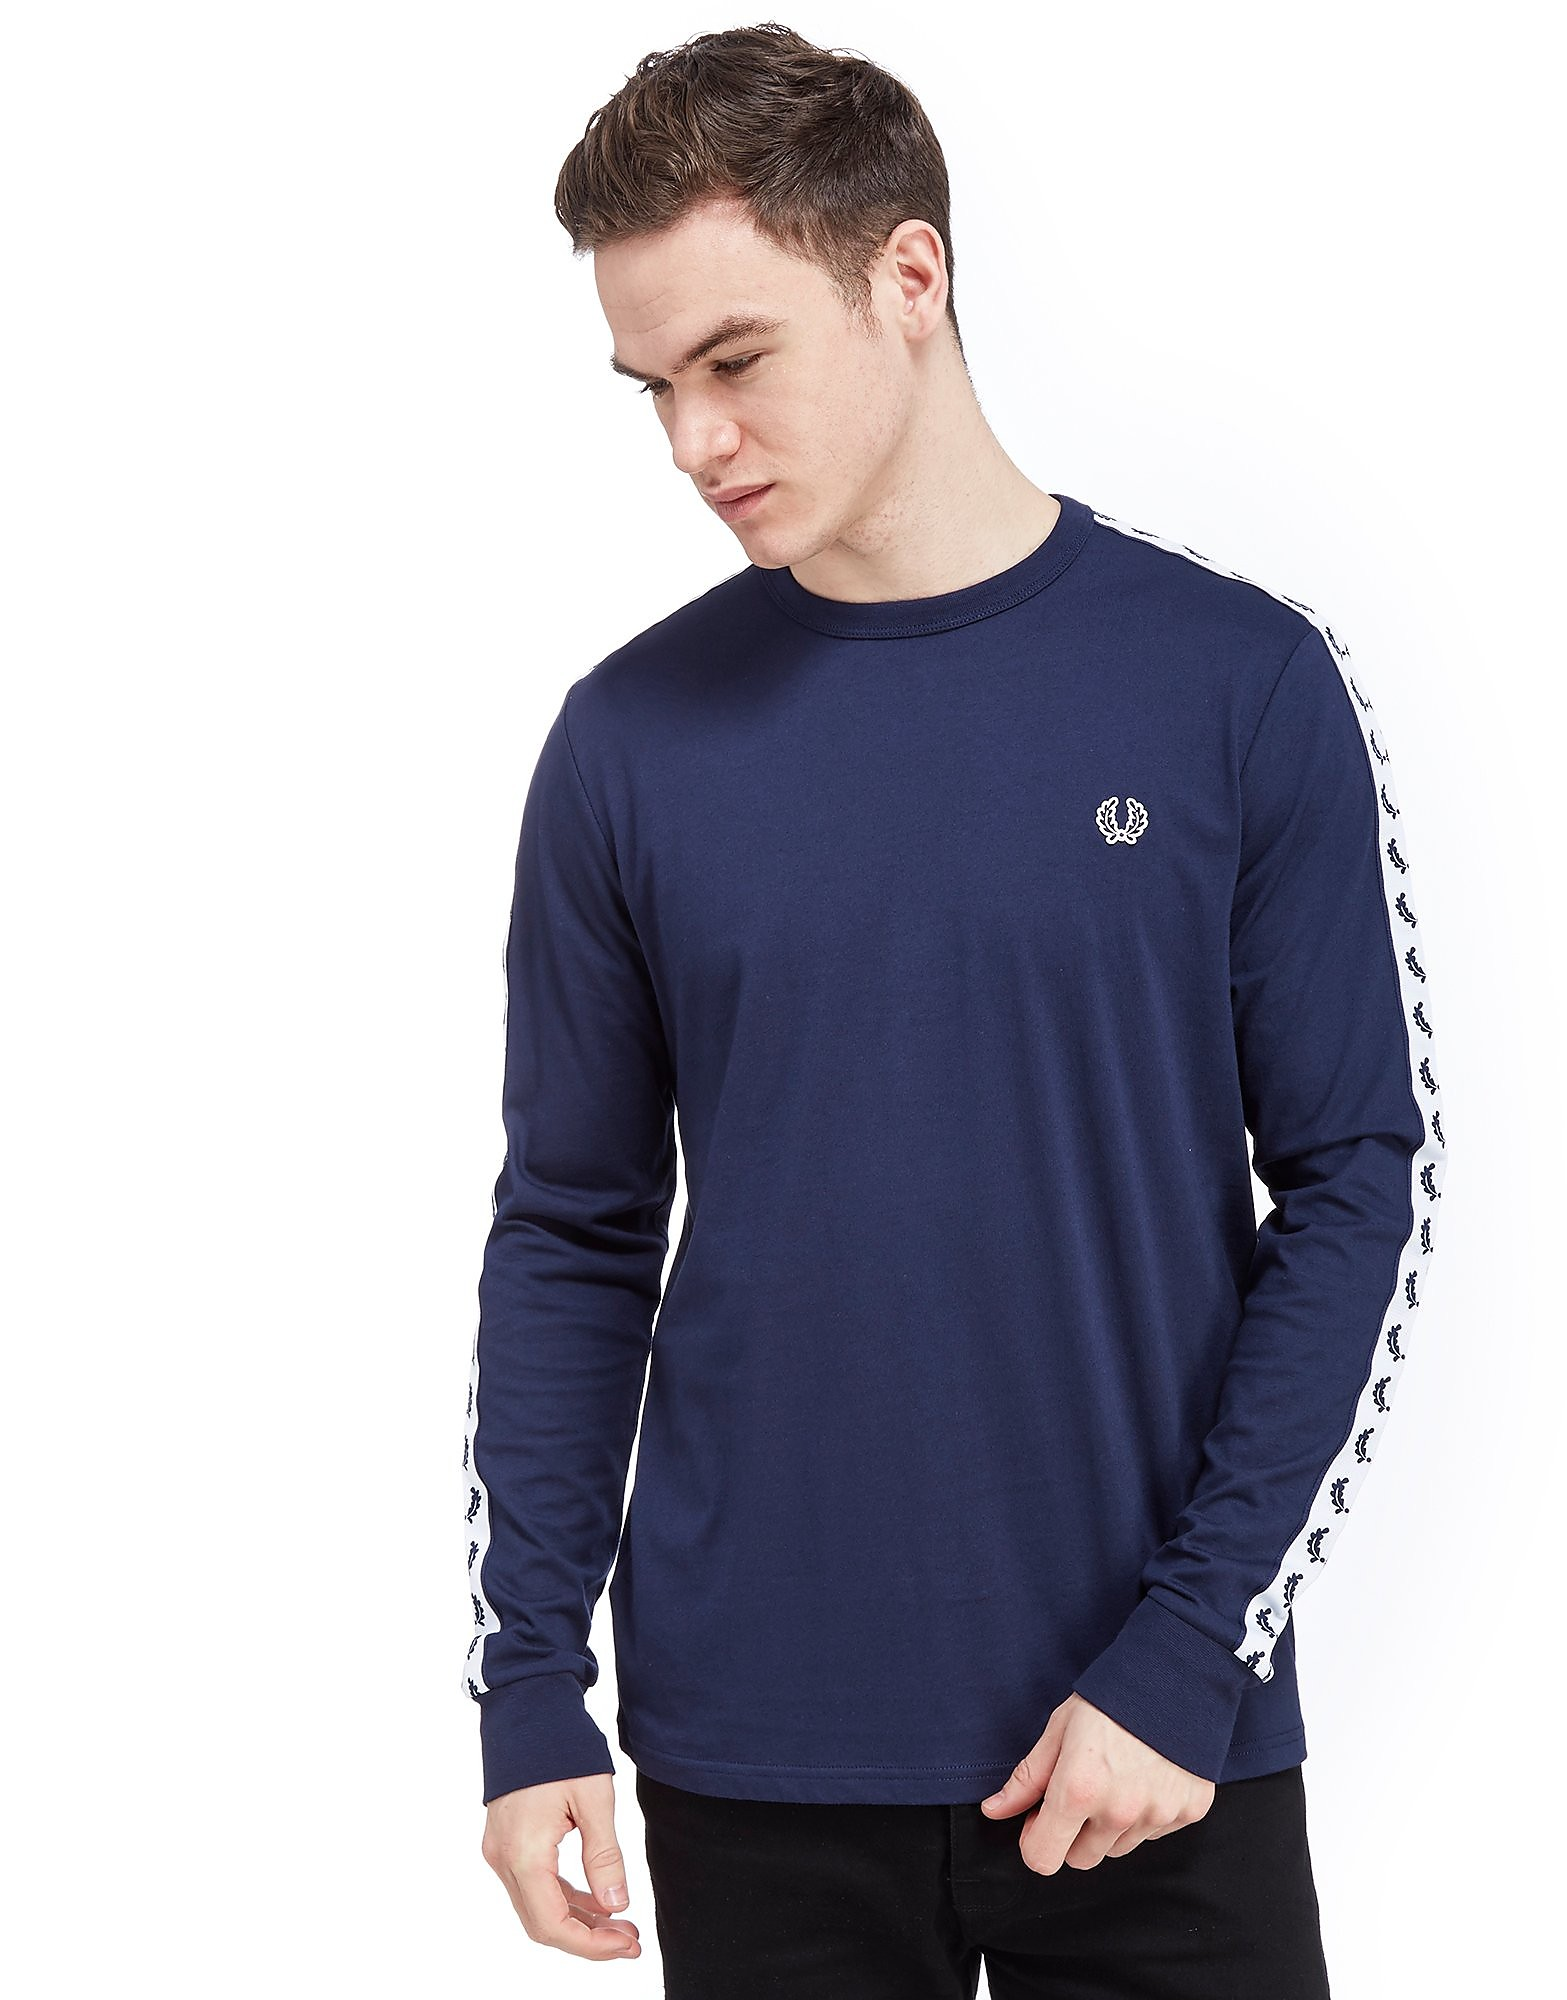 Fred Perry Sports Authentic Longsleeve T-Shirt